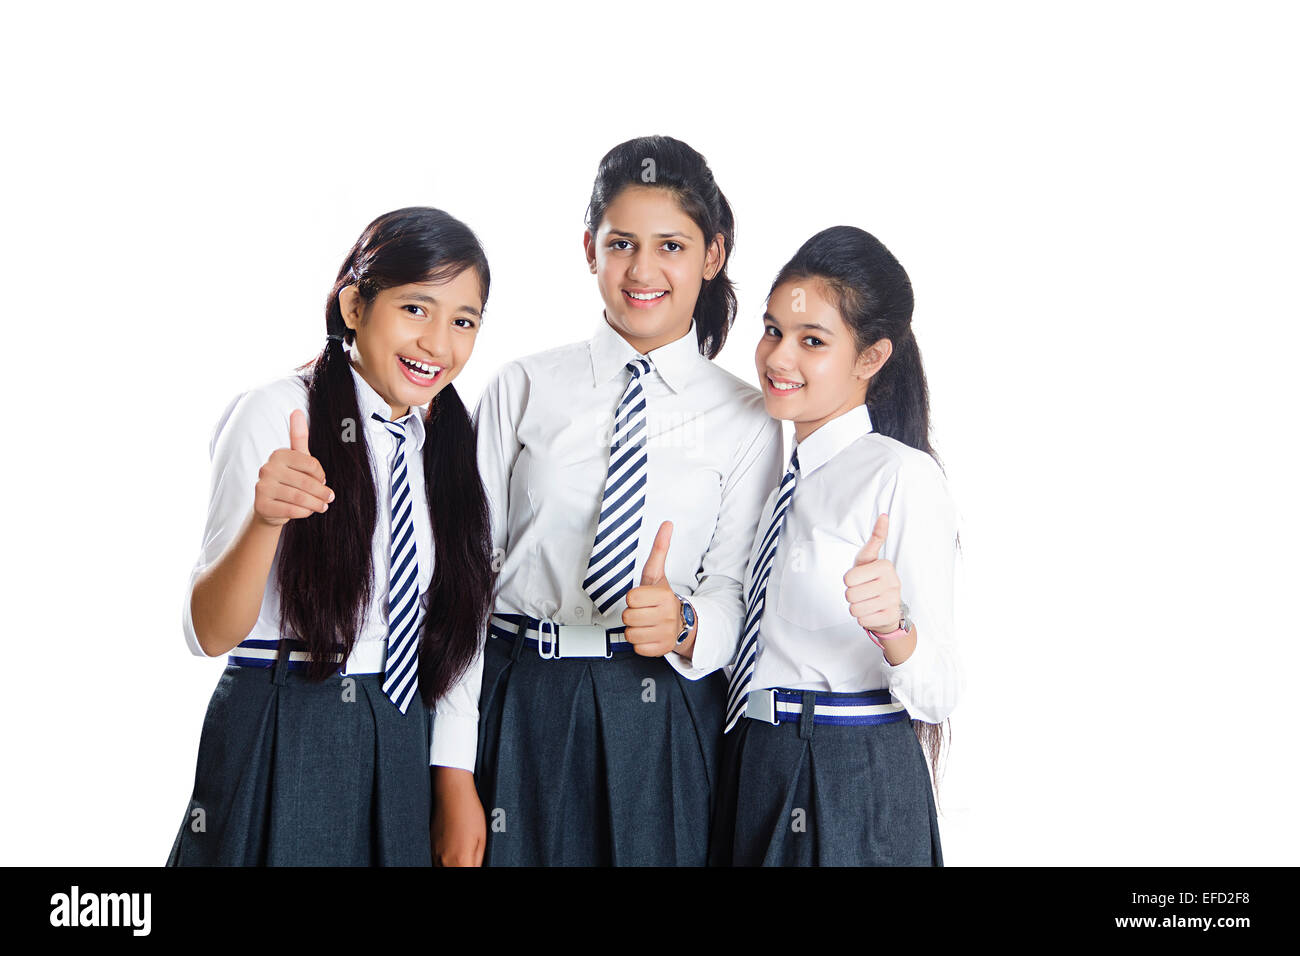 hindu single women in college grove Download indian nude women stock photos affordable and search from millions of royalty free images, photos and vectors.